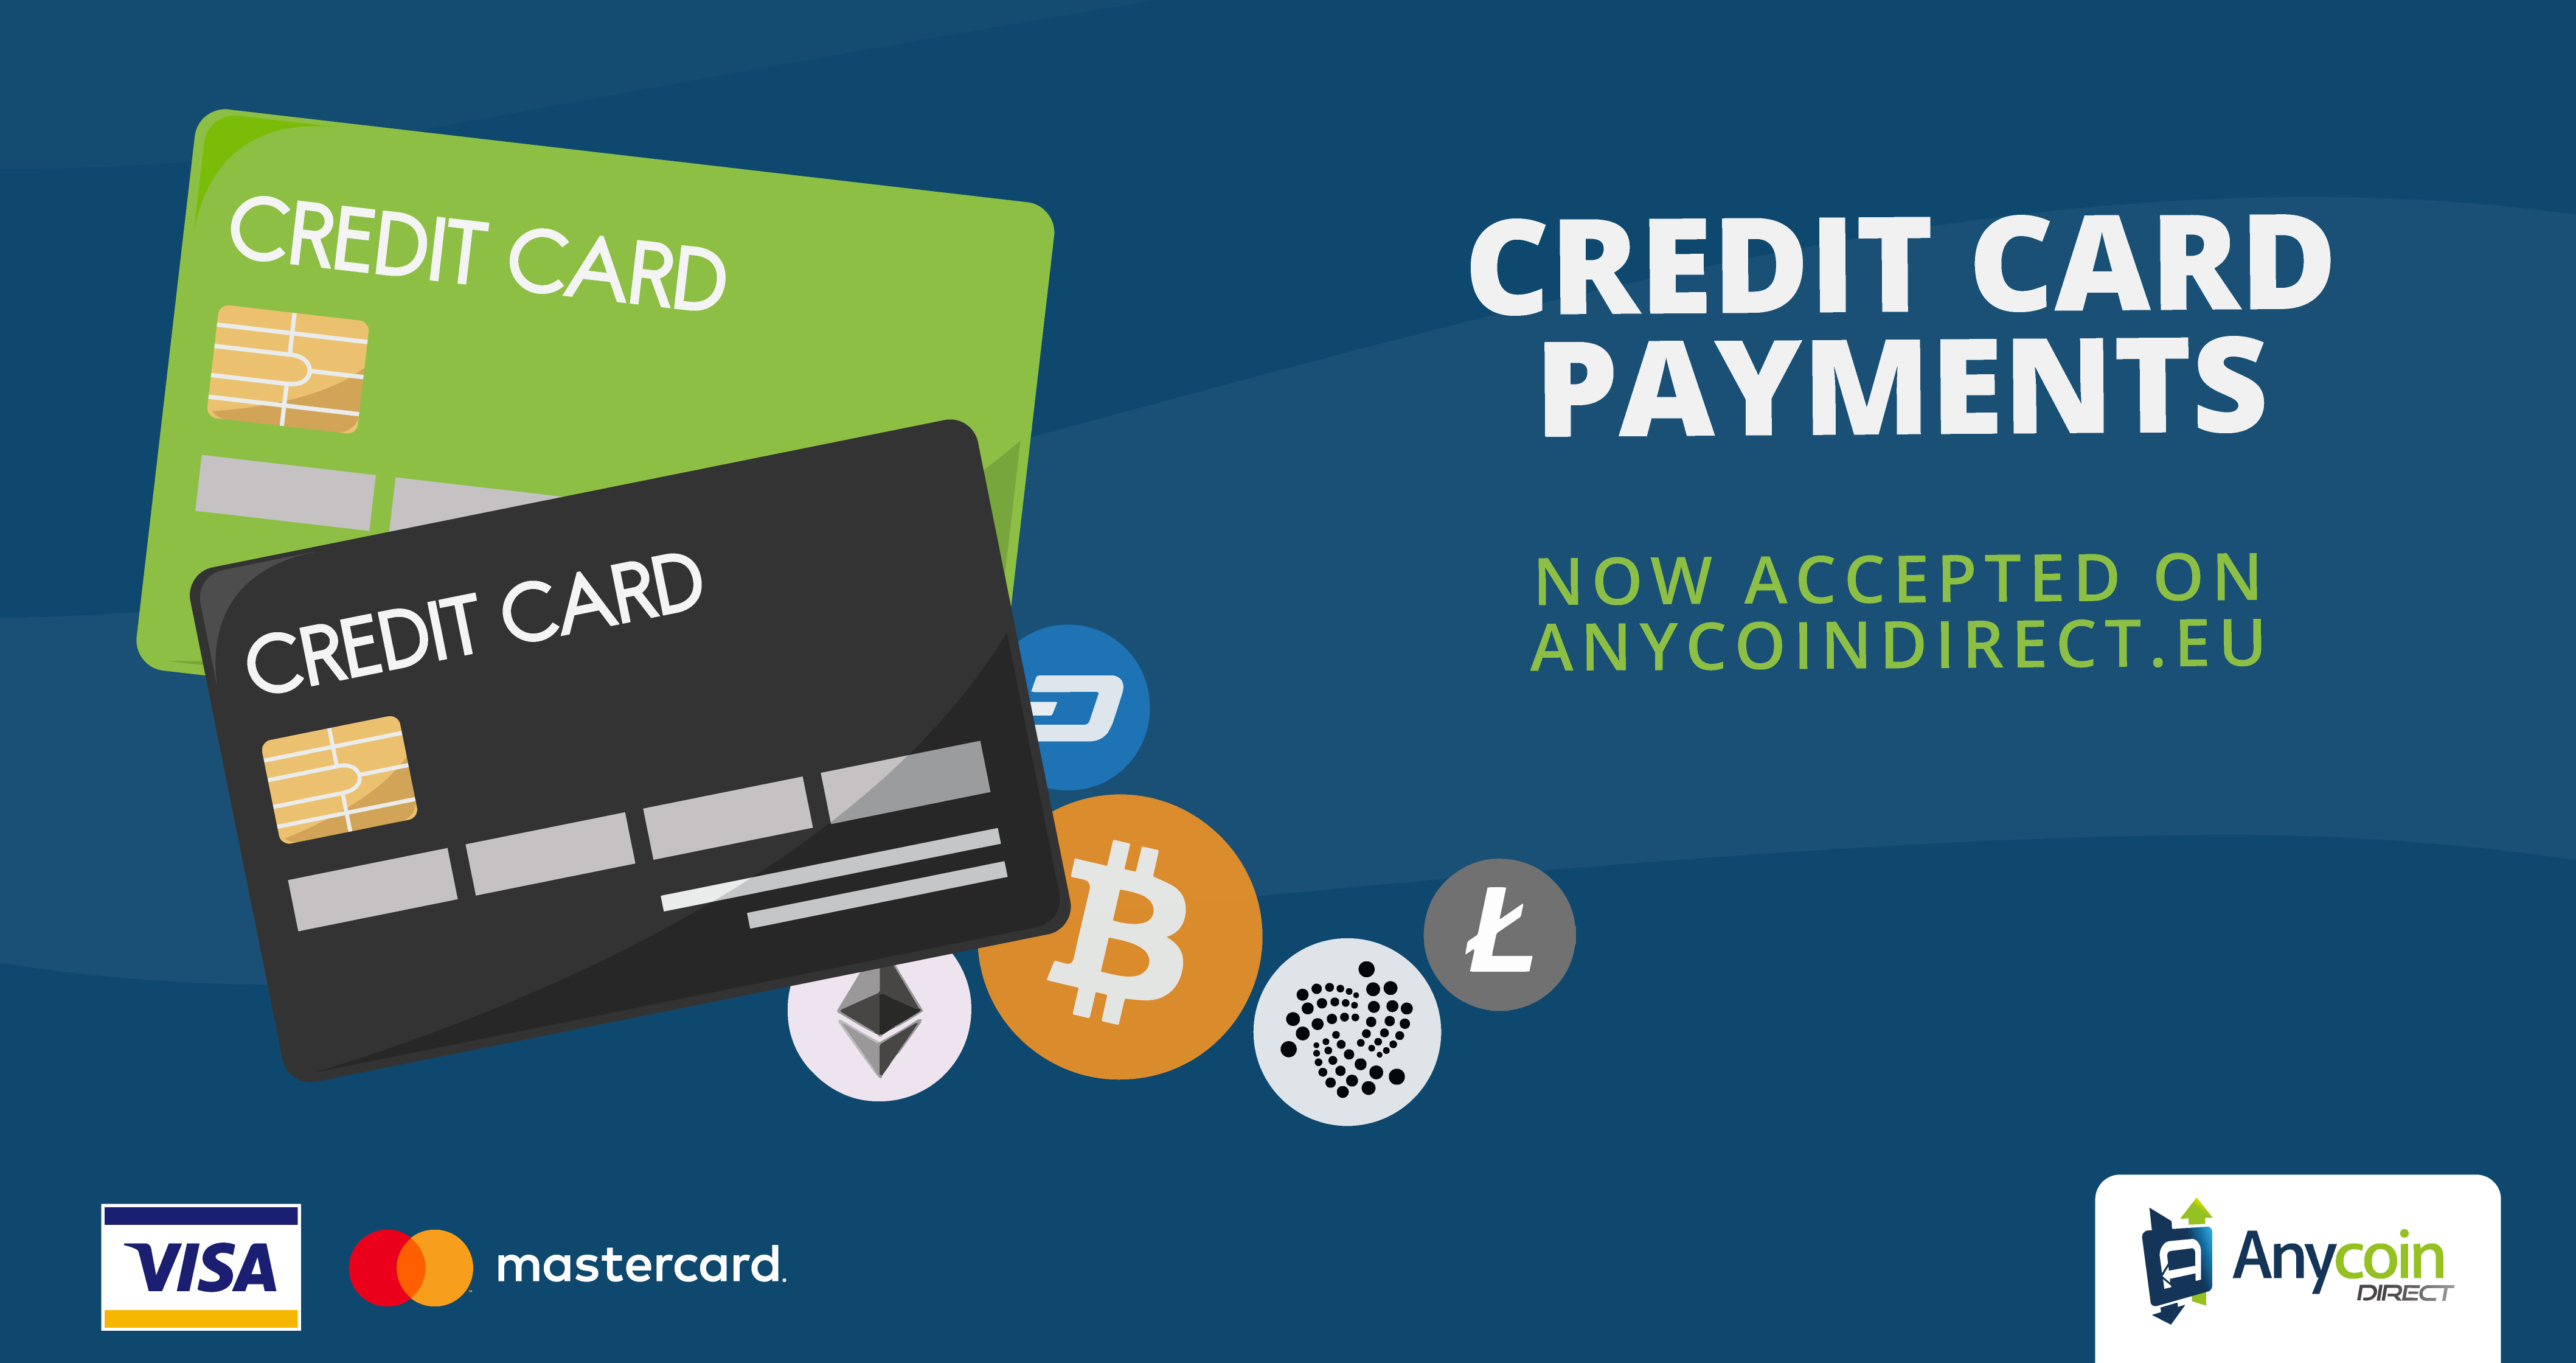 Anycoin Direct Credit Card Deposits